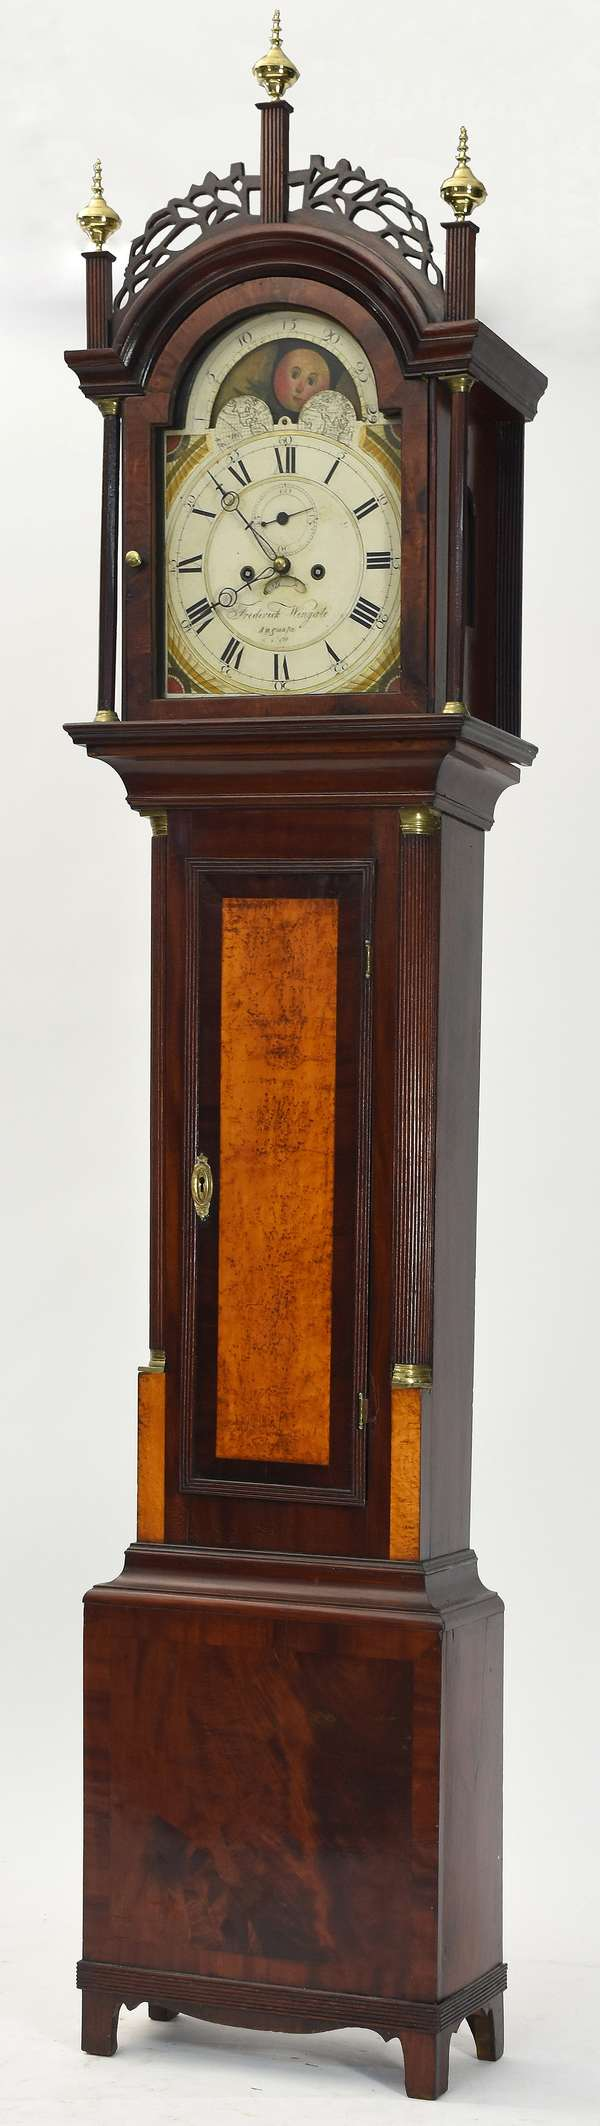 """Fine Federal tall case clock dial signed Frederick Wingate, Augusta, mahogany with birdseye veneer, and fretwork bonnet, 94""""H."""